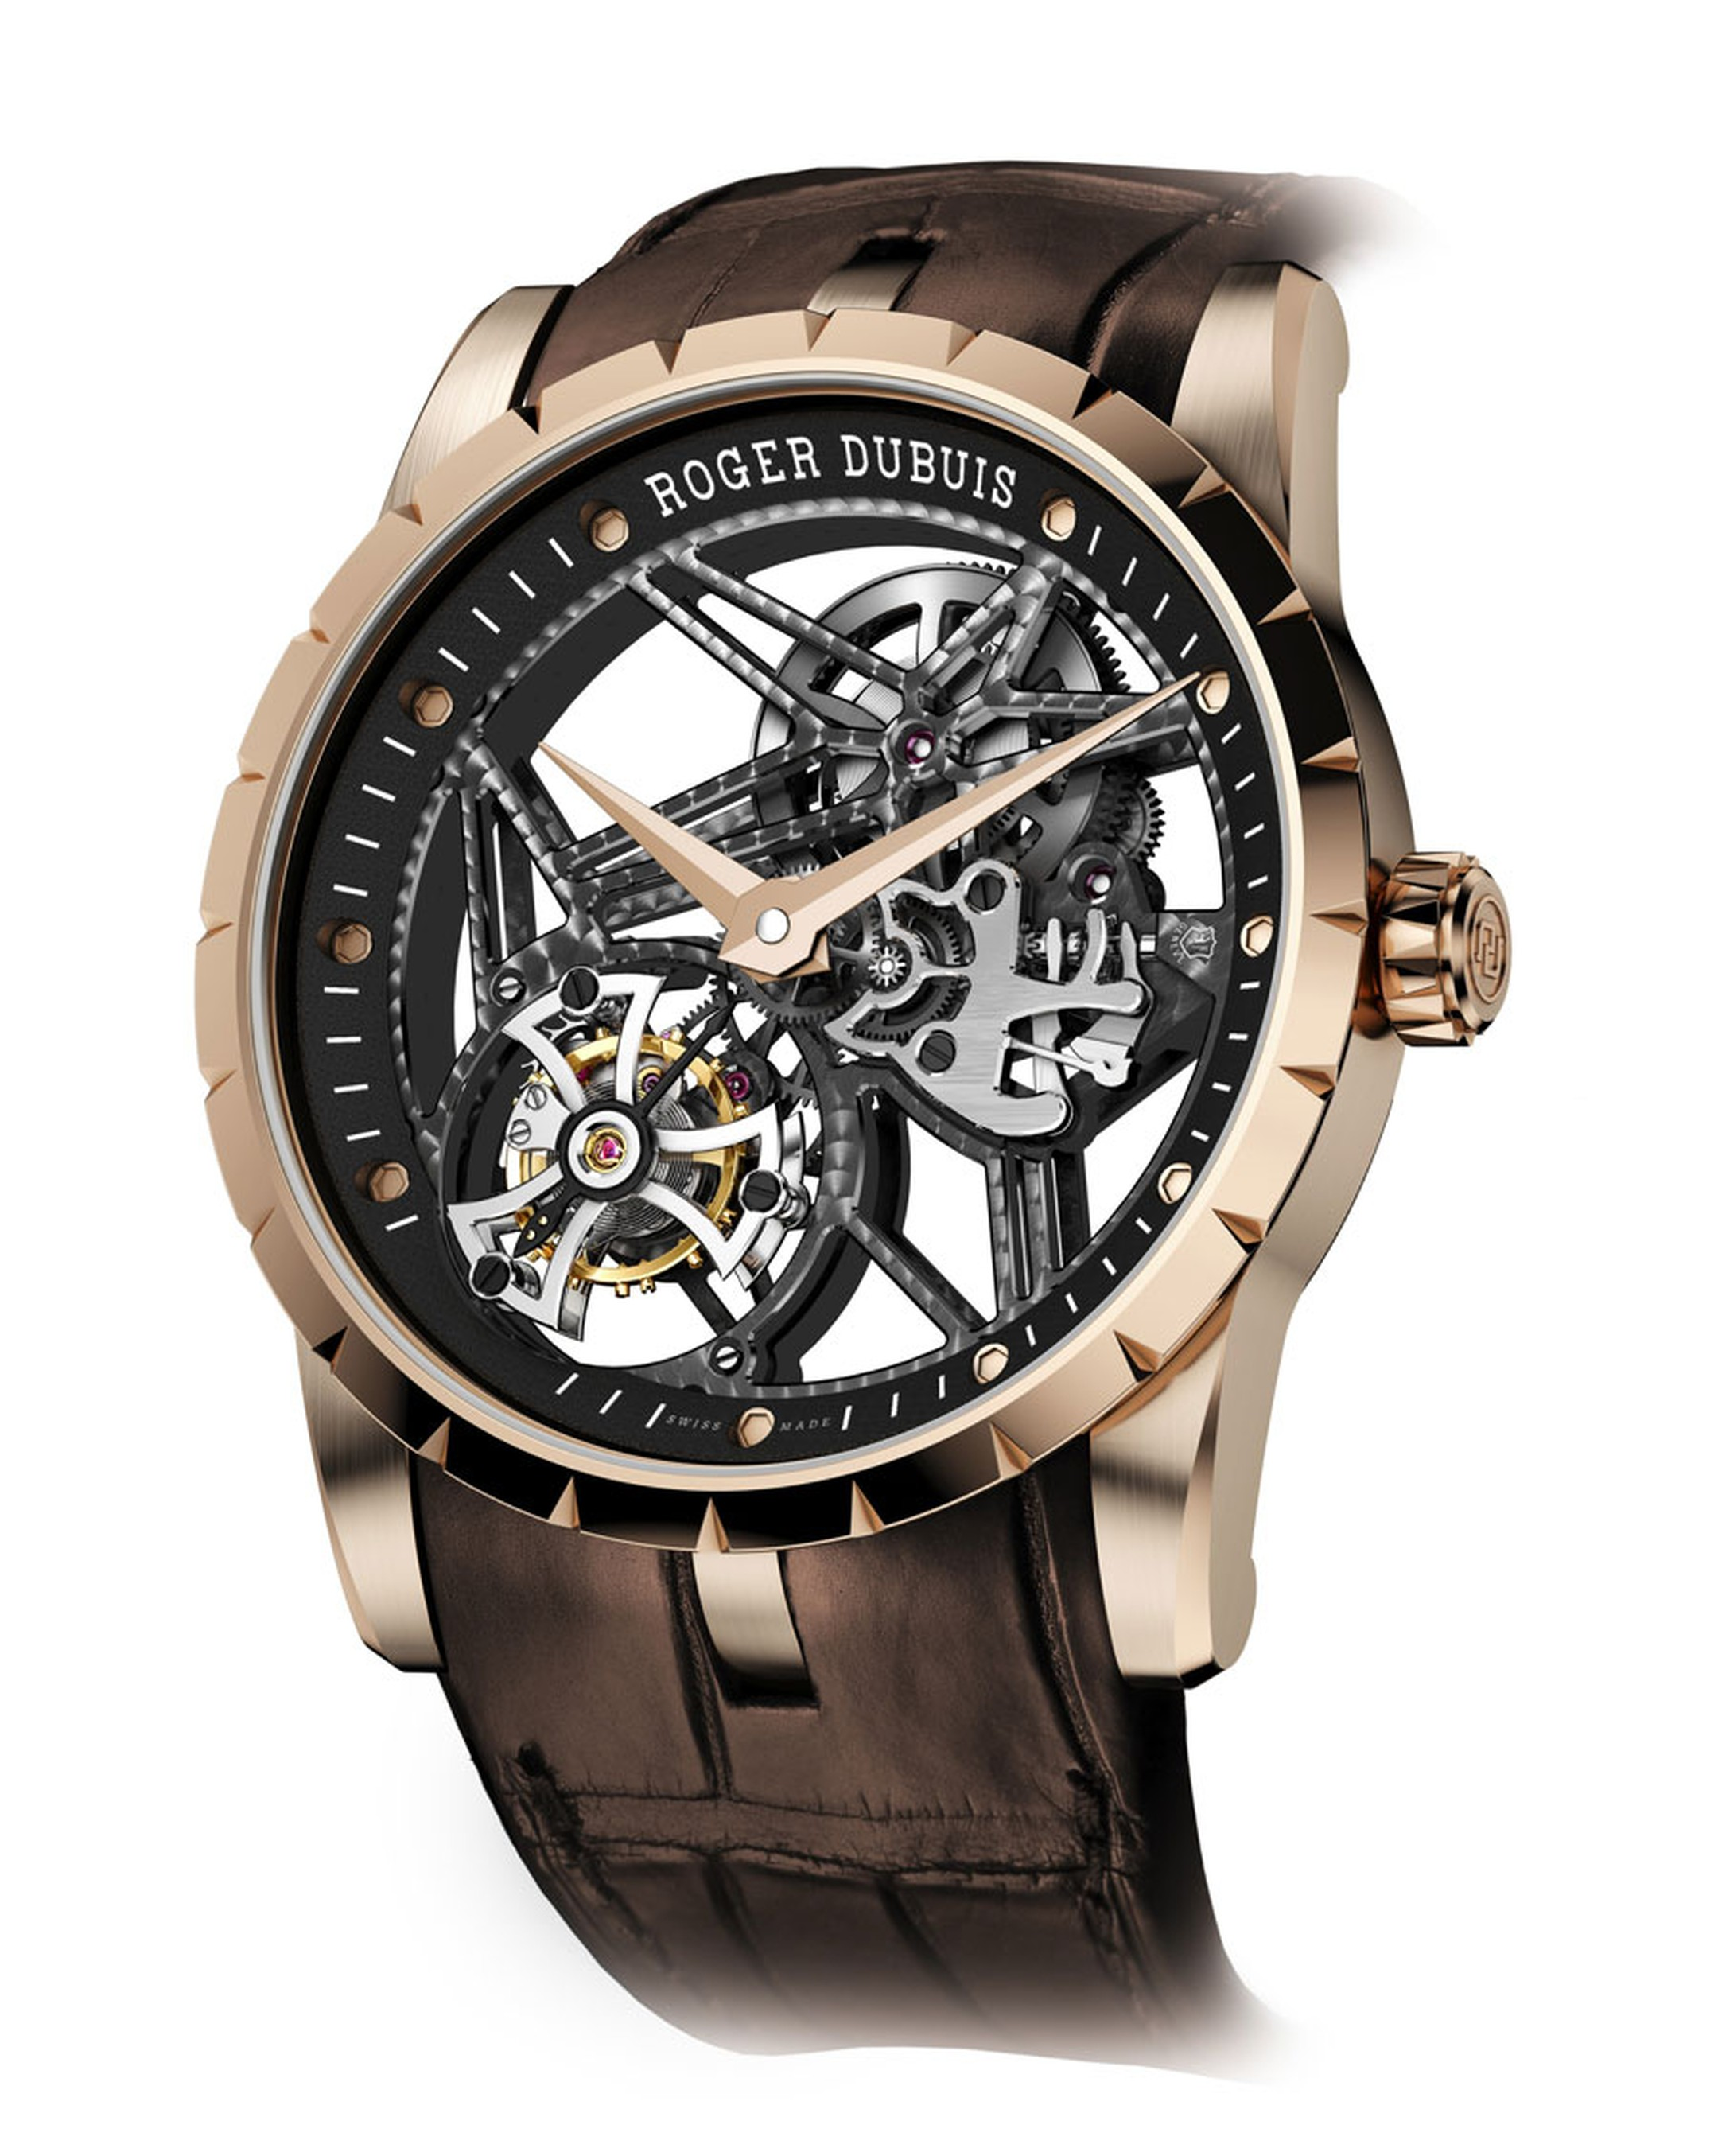 Roger-Dubuis-Excalibur-42-Skeleton-Tourbillon-in-pink-gold.jpg